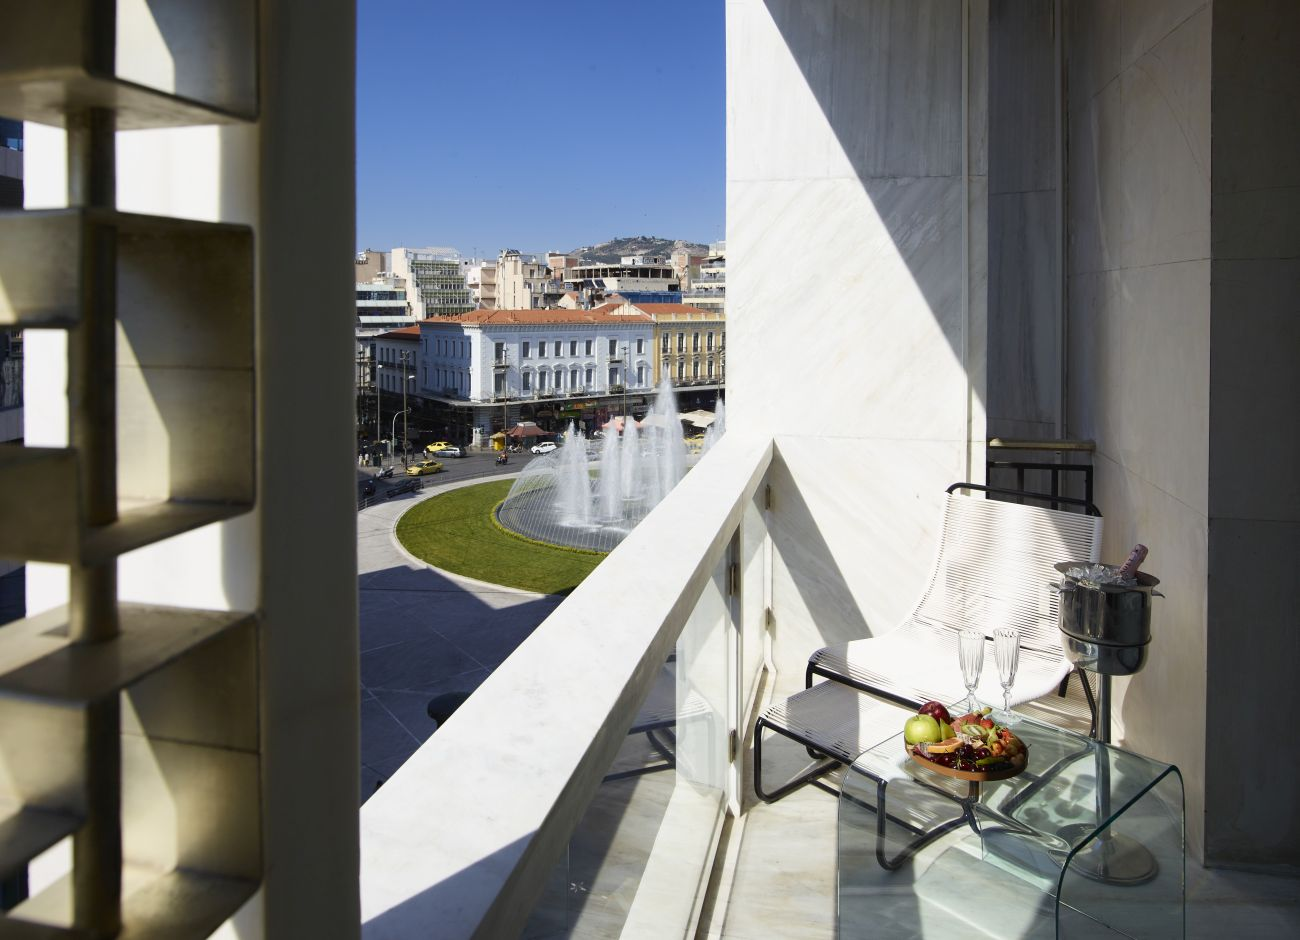 Brown Acropol by Brown Hotels in Athens. Photo: Paterakis